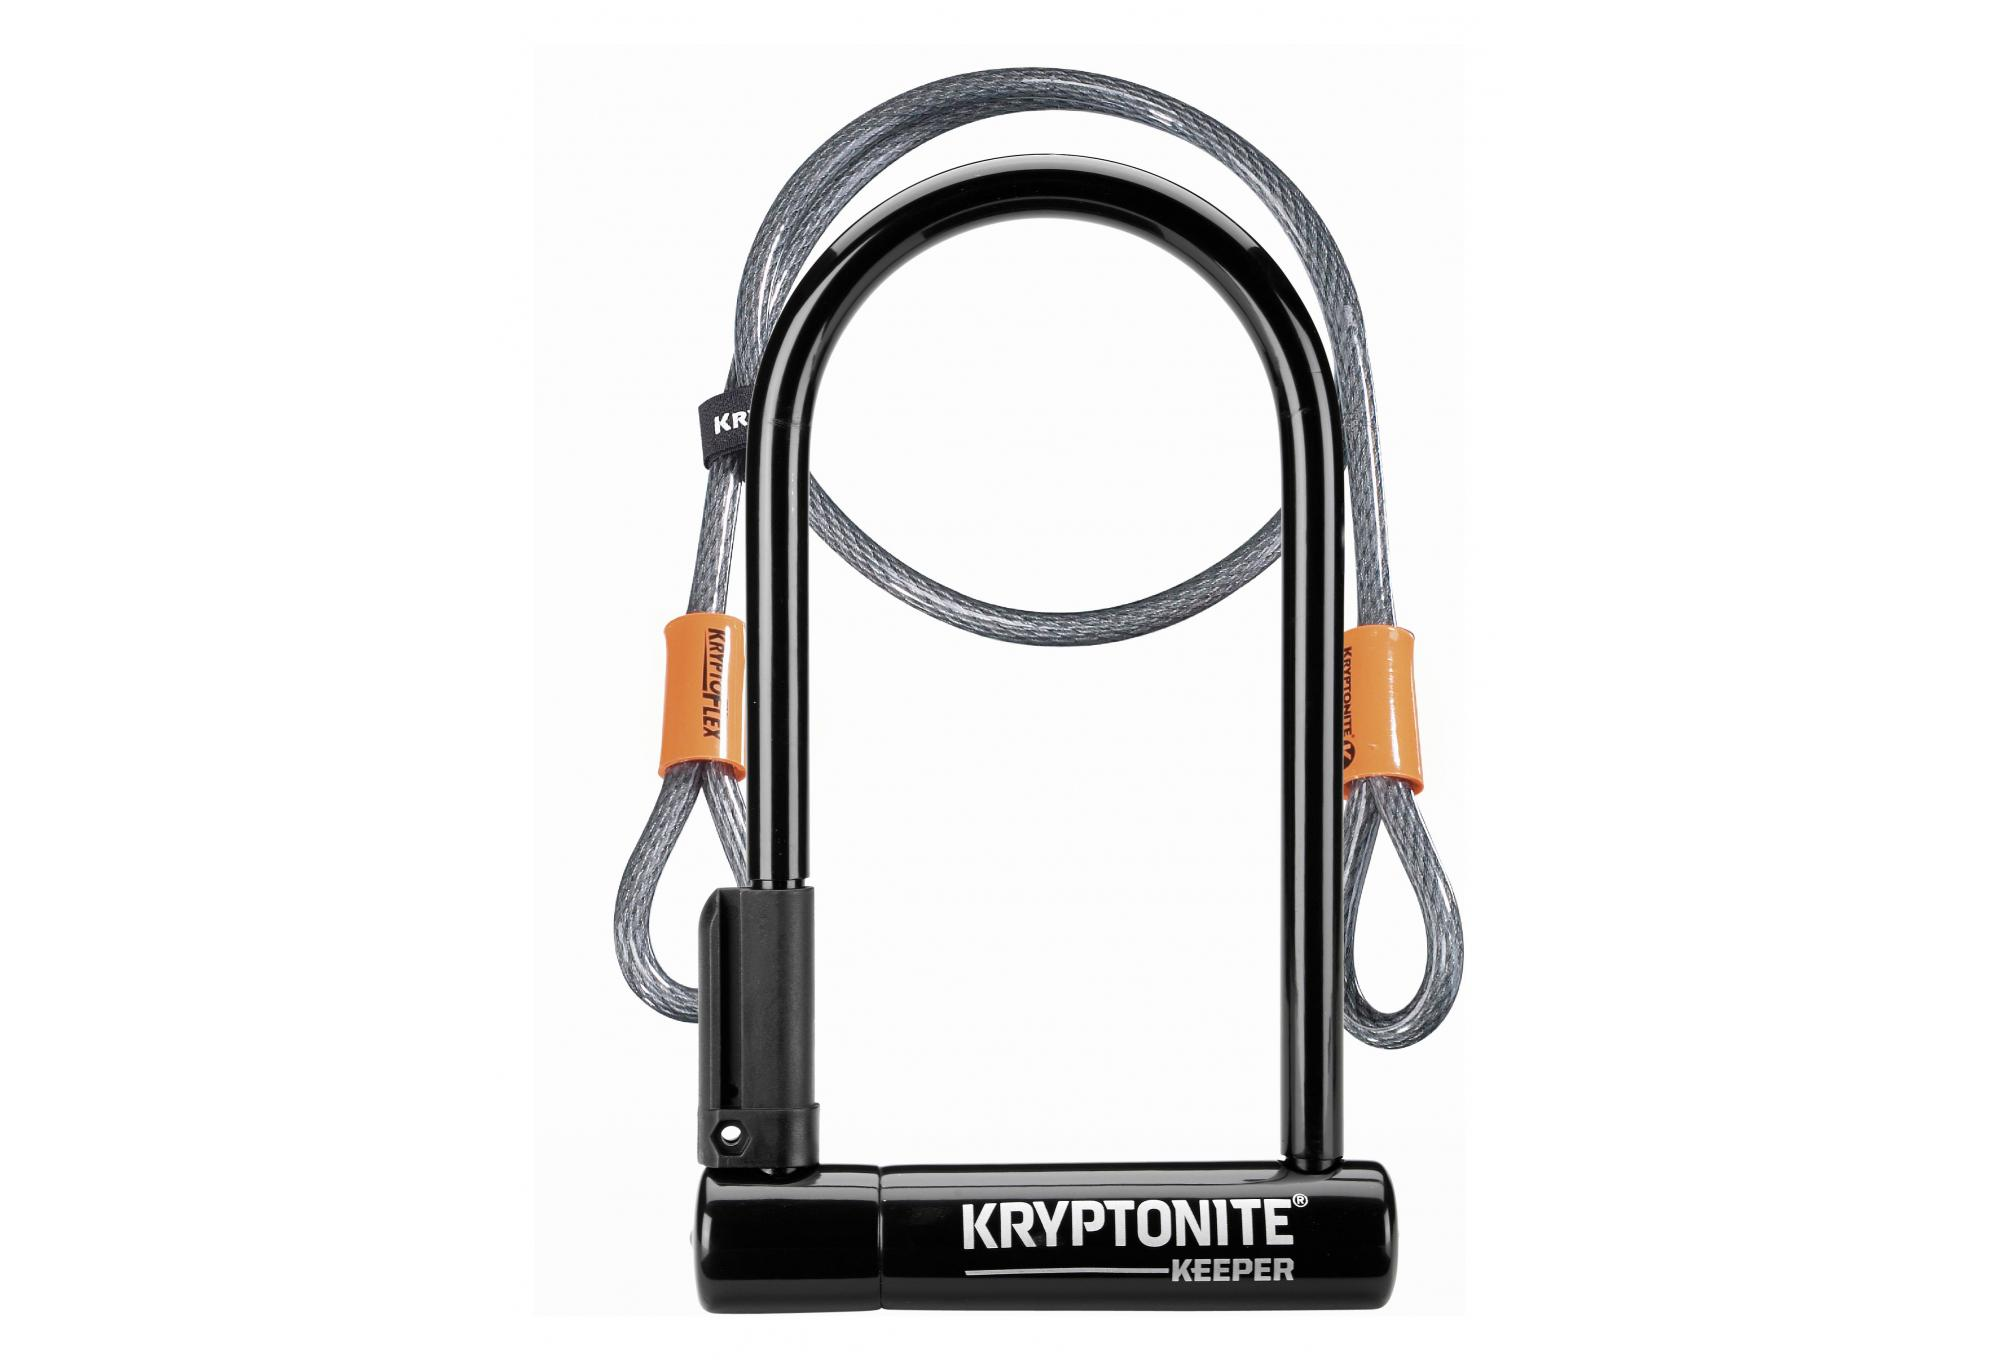 Kryptonite U Keeper Lock 12 Std With Flex Cable